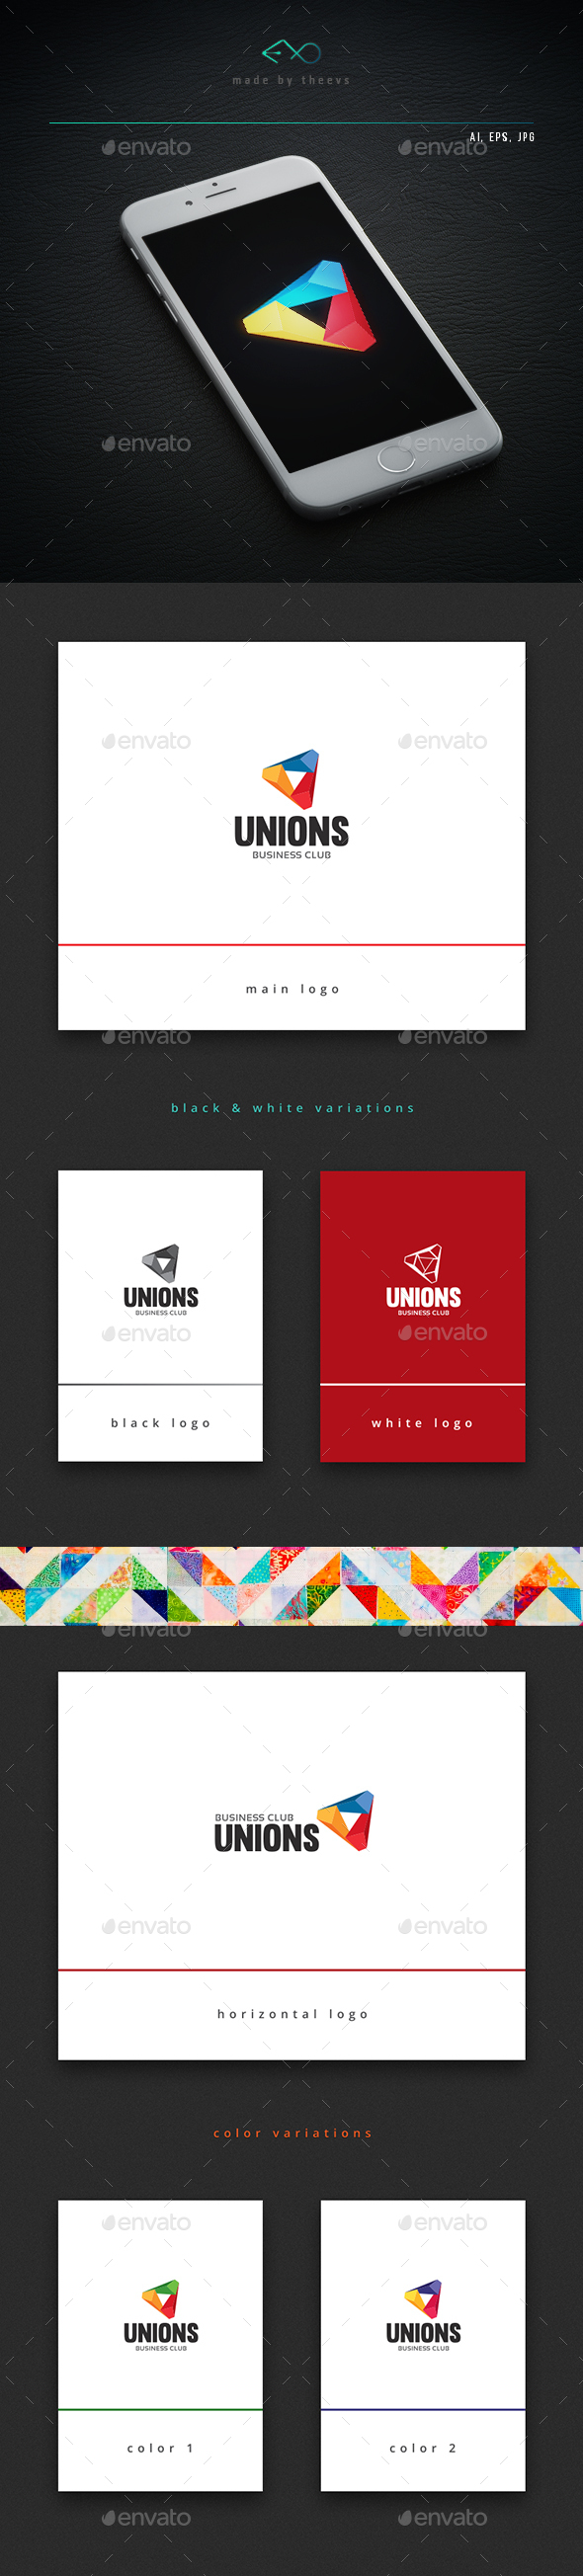 Unions - Vector Abstract